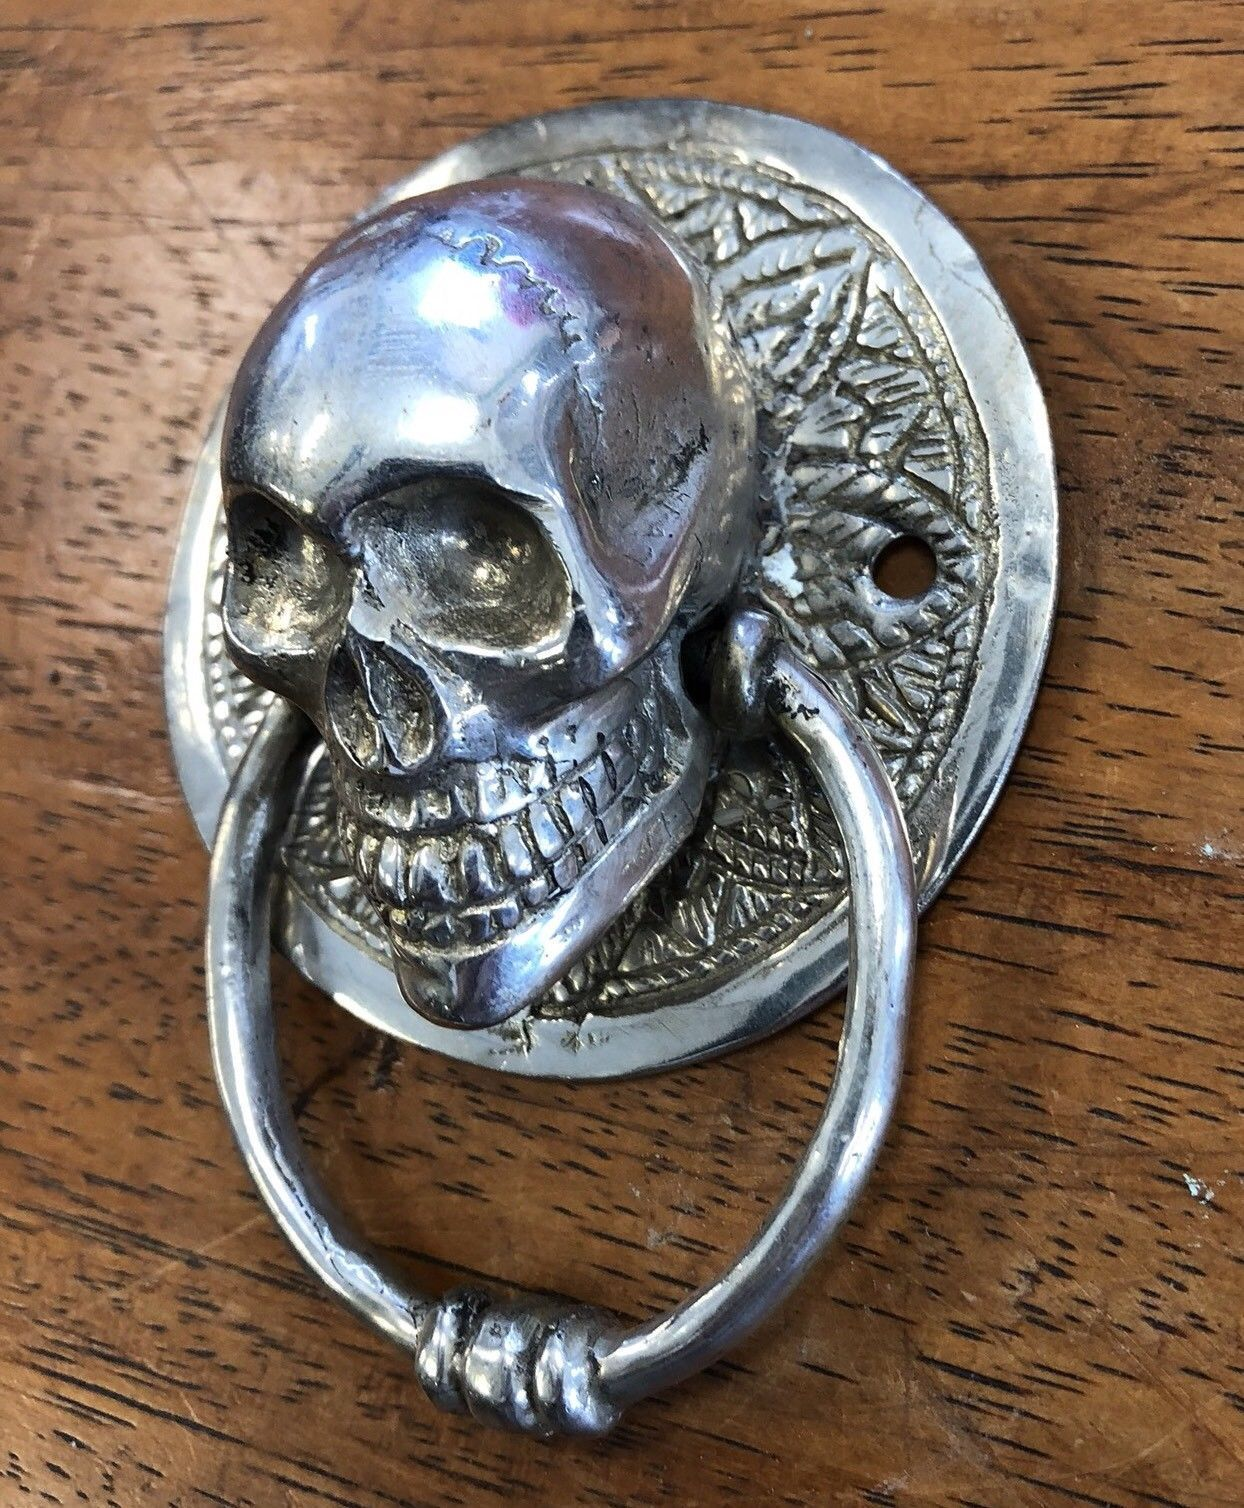 2 Small Round Skull Head Silver Plated Over Brass Ring